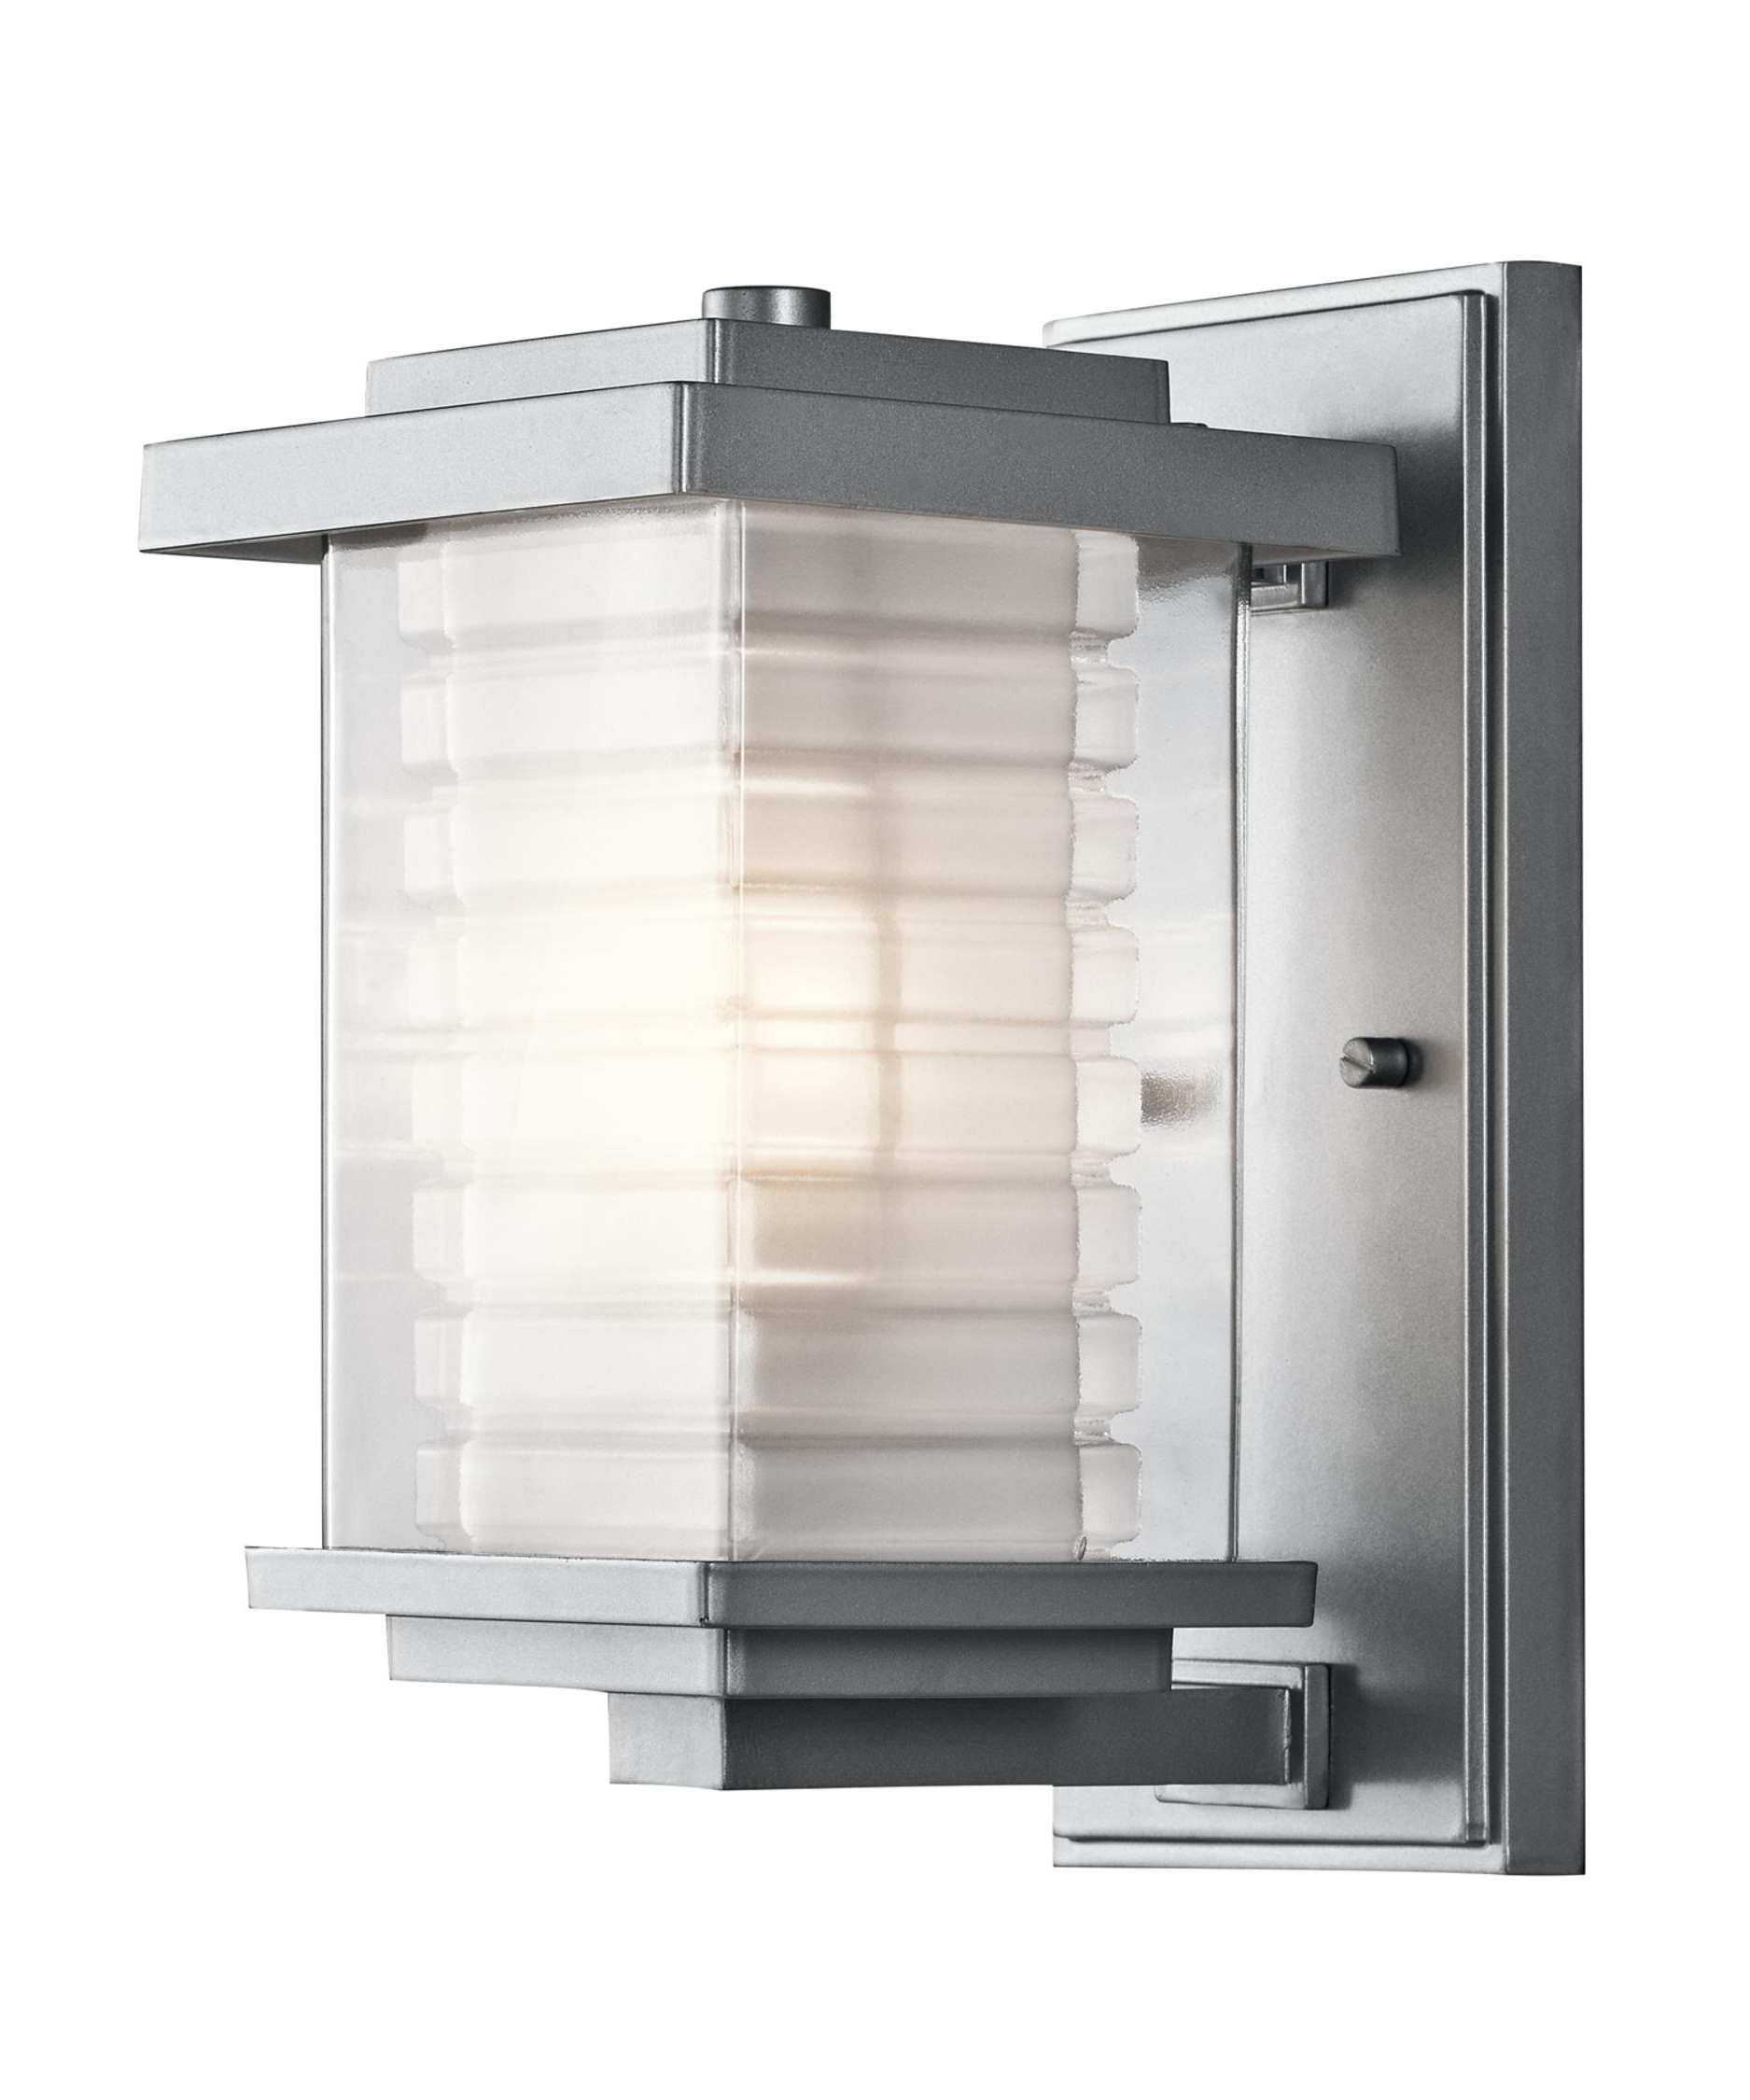 Outdoor Wall Lighting At Kichler With Regard To Most Recently Released Kichler 49364 Ascari 6 Inch Wide 1 Light Outdoor Wall Light (View 13 of 20)